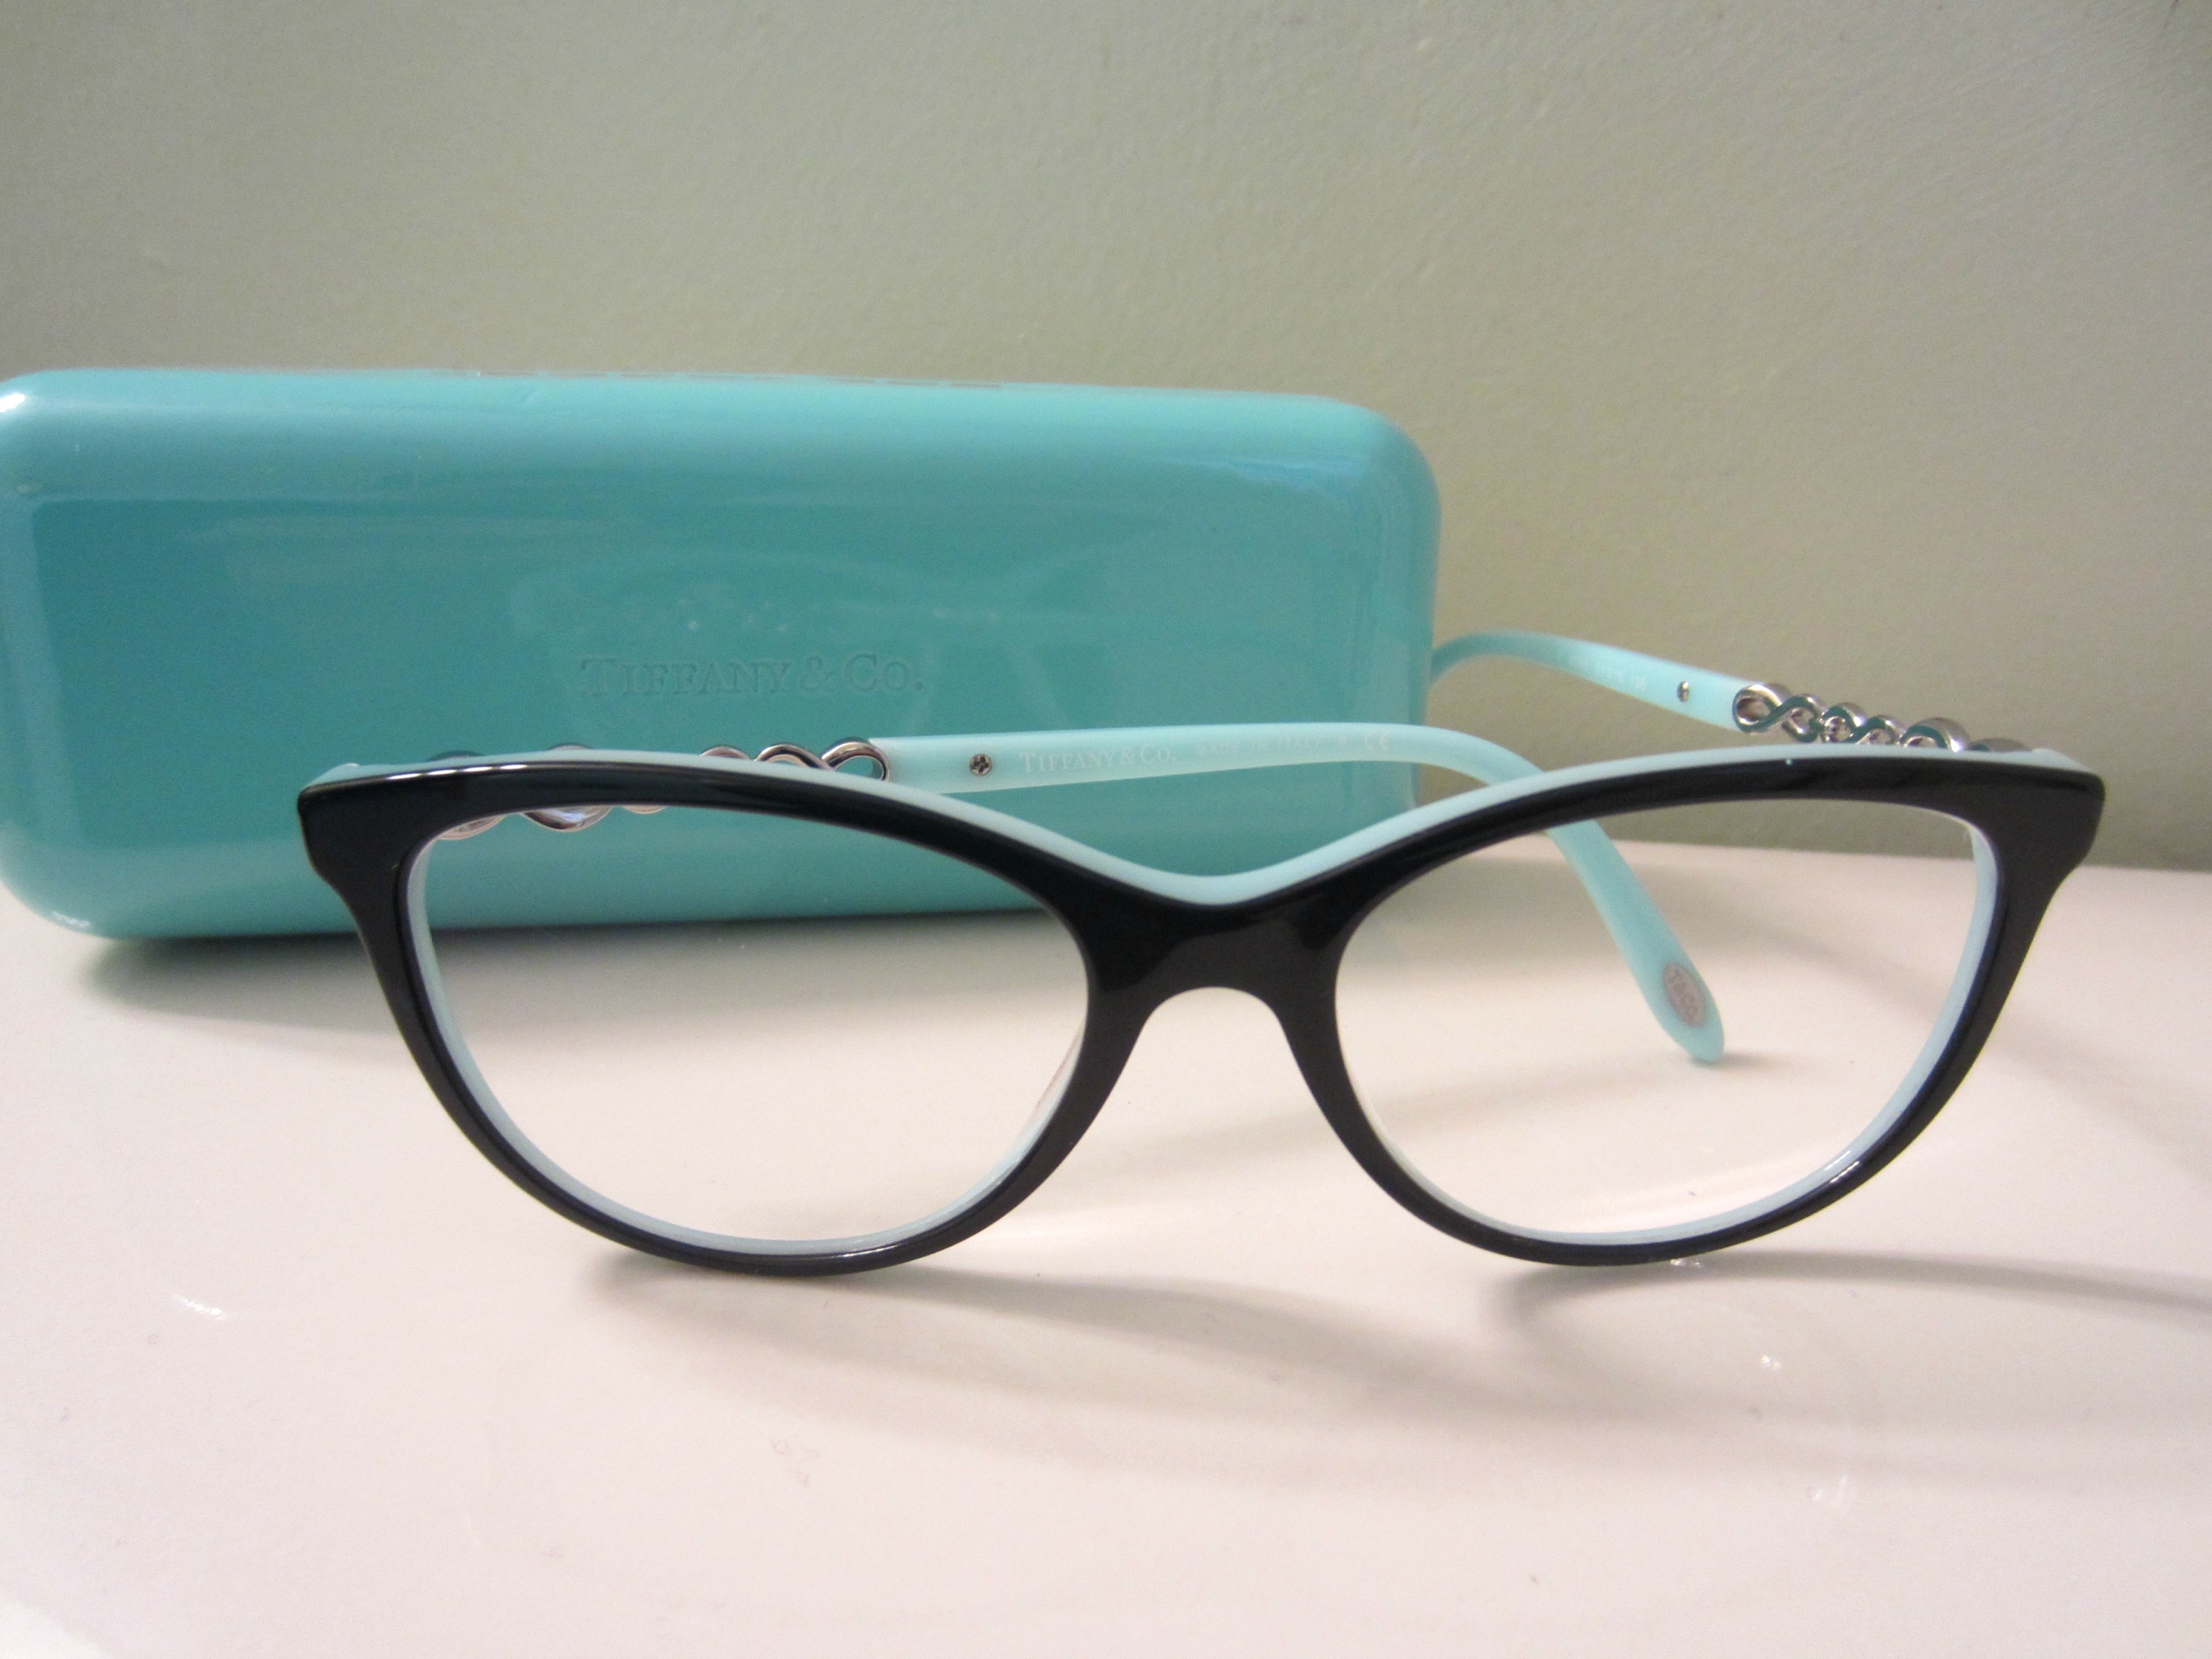 Glasses Frames Tiffany : Friday Favorites #119: Week of 12/11 Life In Leggings